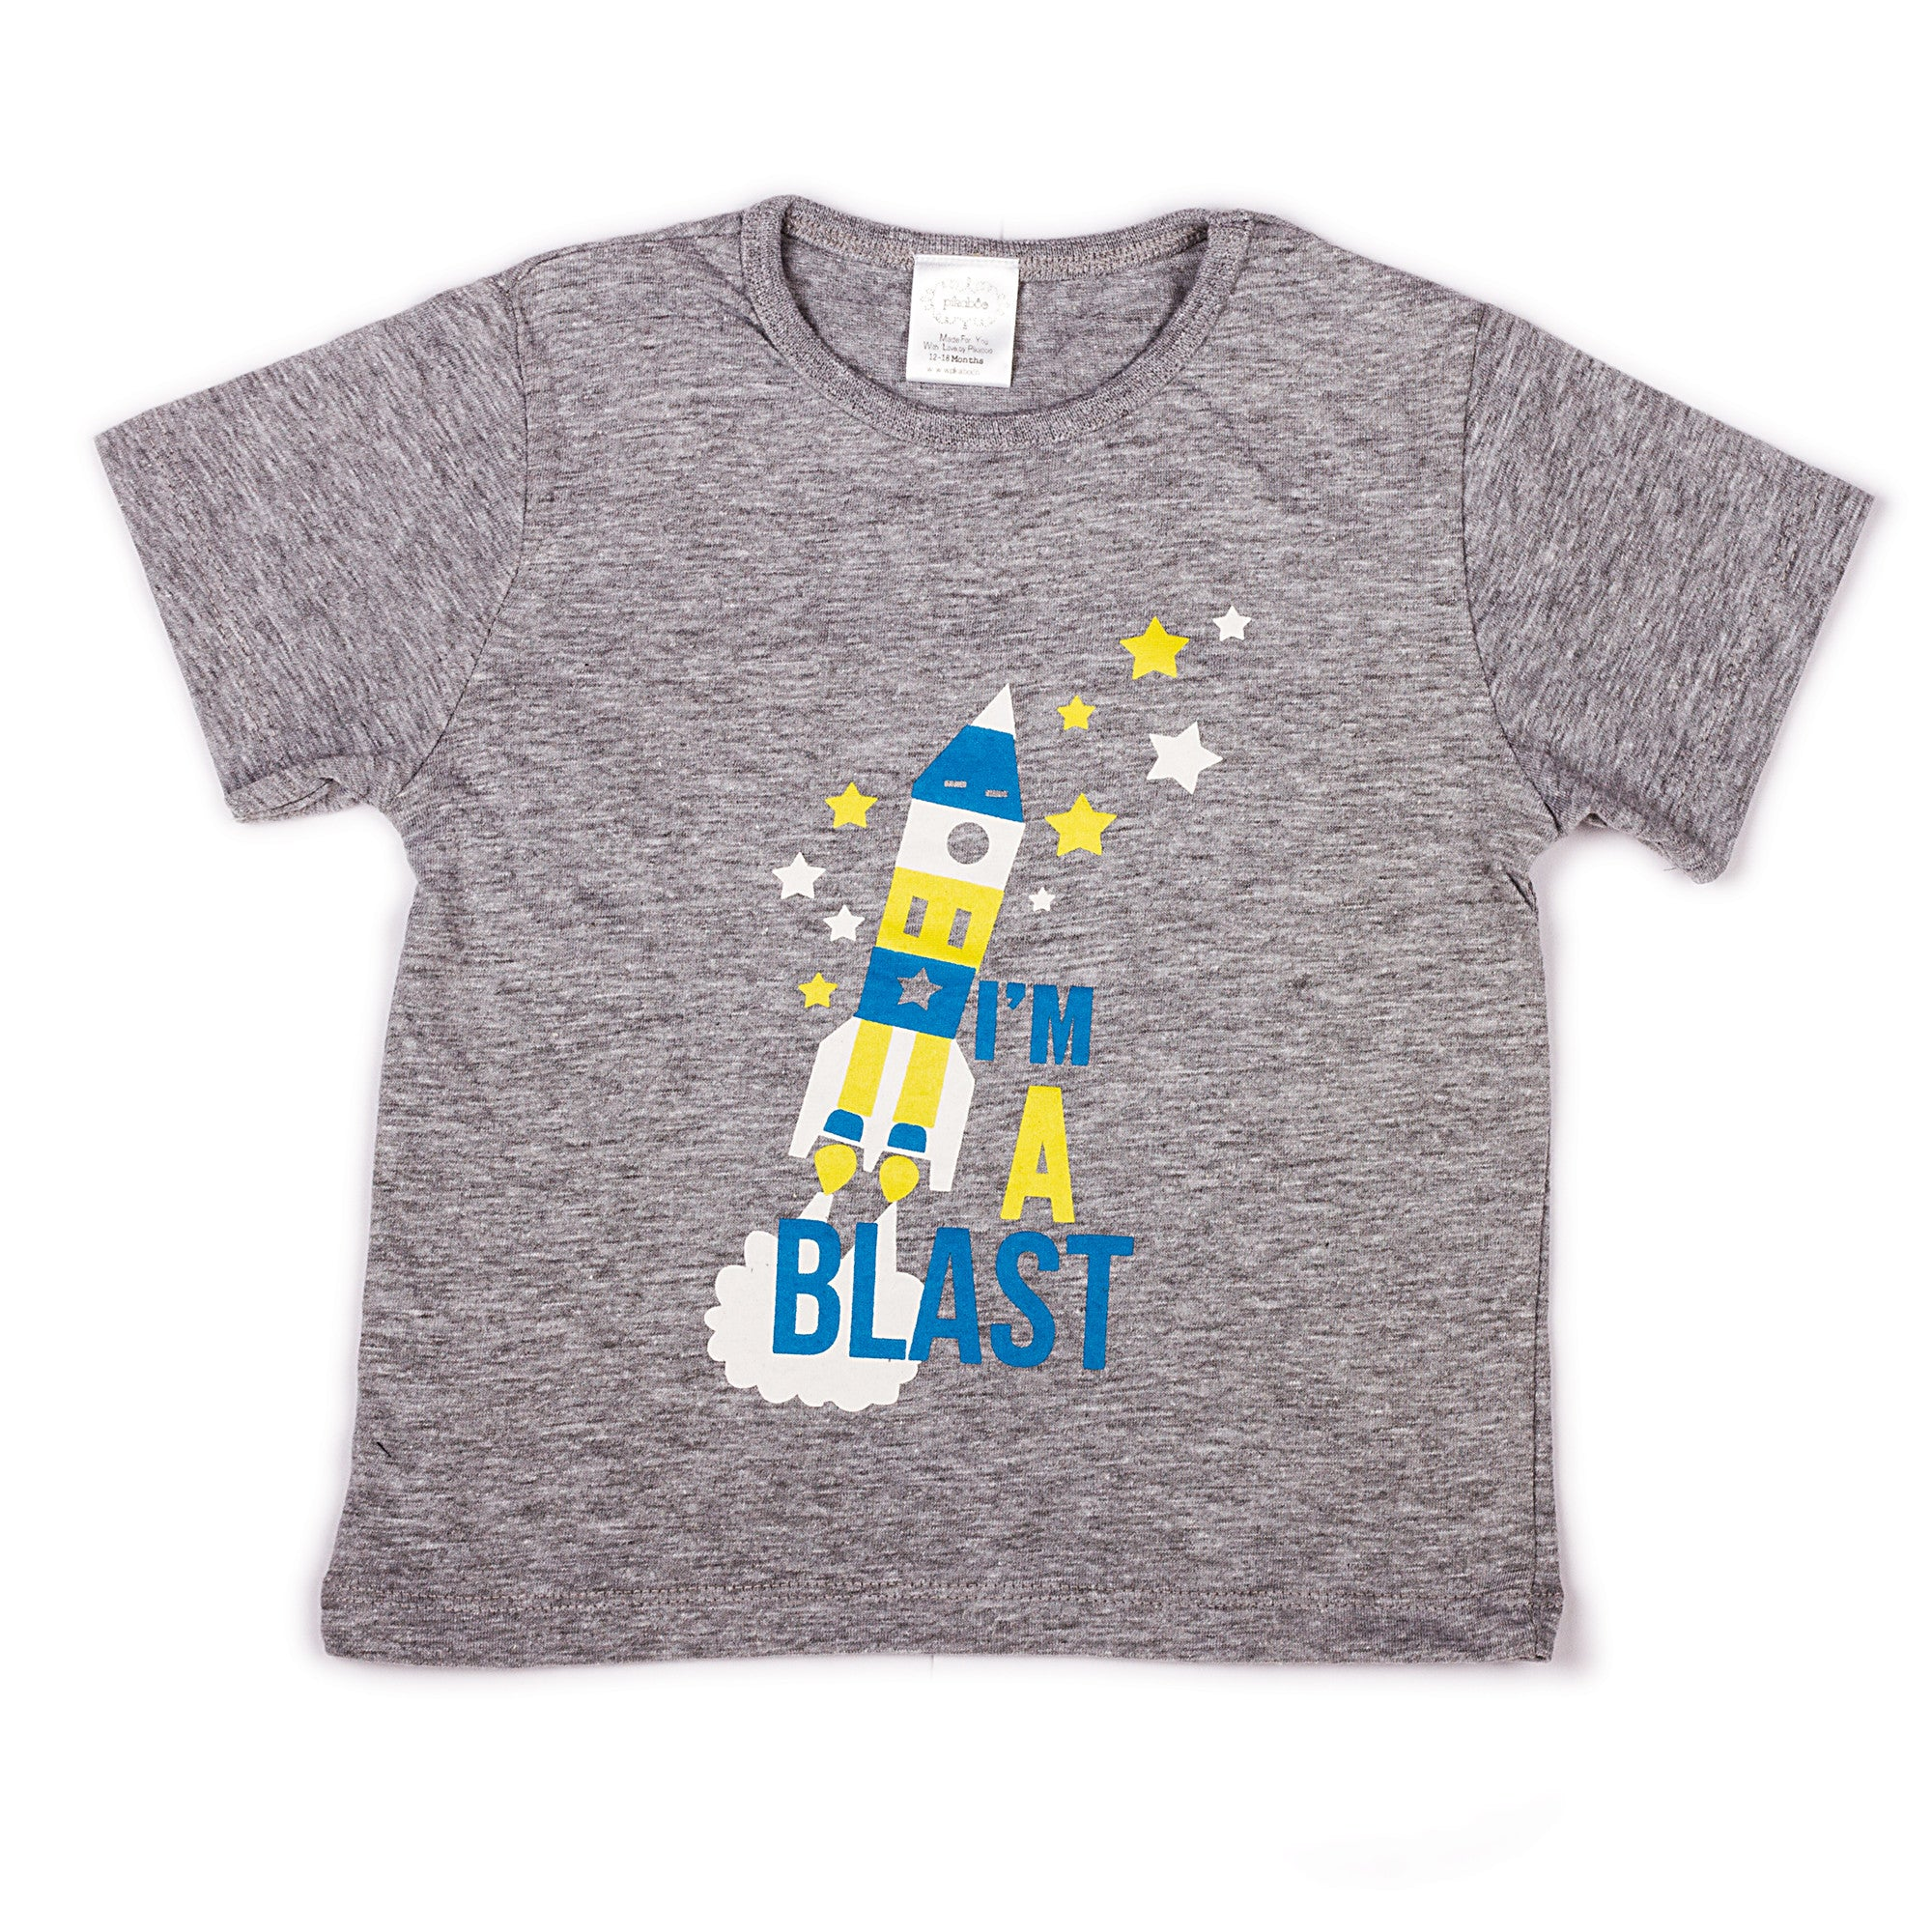 3750e3374de Check COD Availability. Check. Grey Melange with chest printed infant boys t  shirt ...